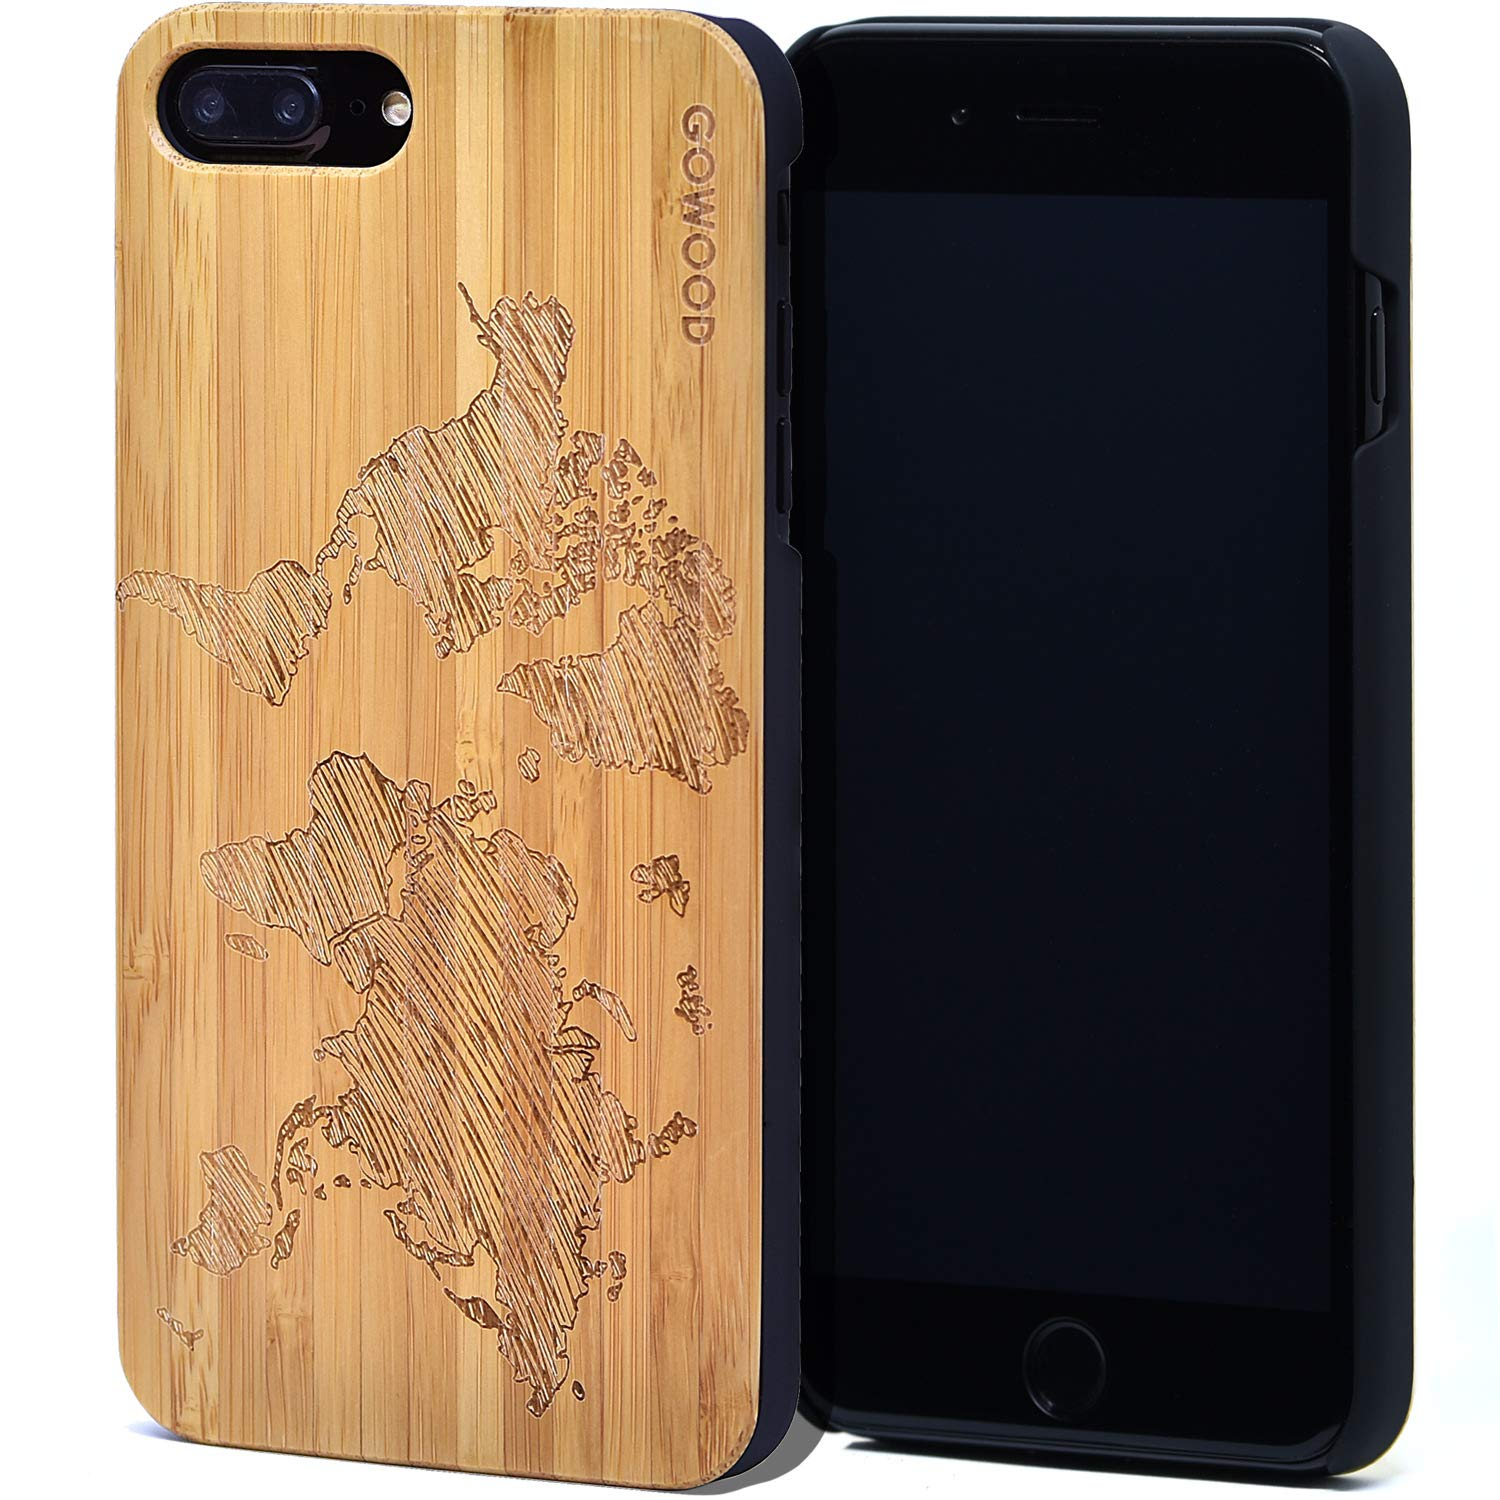 Wood Case for iPhone 7 Plus and 8 Plus   Real Natural Bamboo World Map Design Engraved on Backside and Durable Hard Polycarbonate Shockproof Bumper with Shock Absorbing Rubber Coating